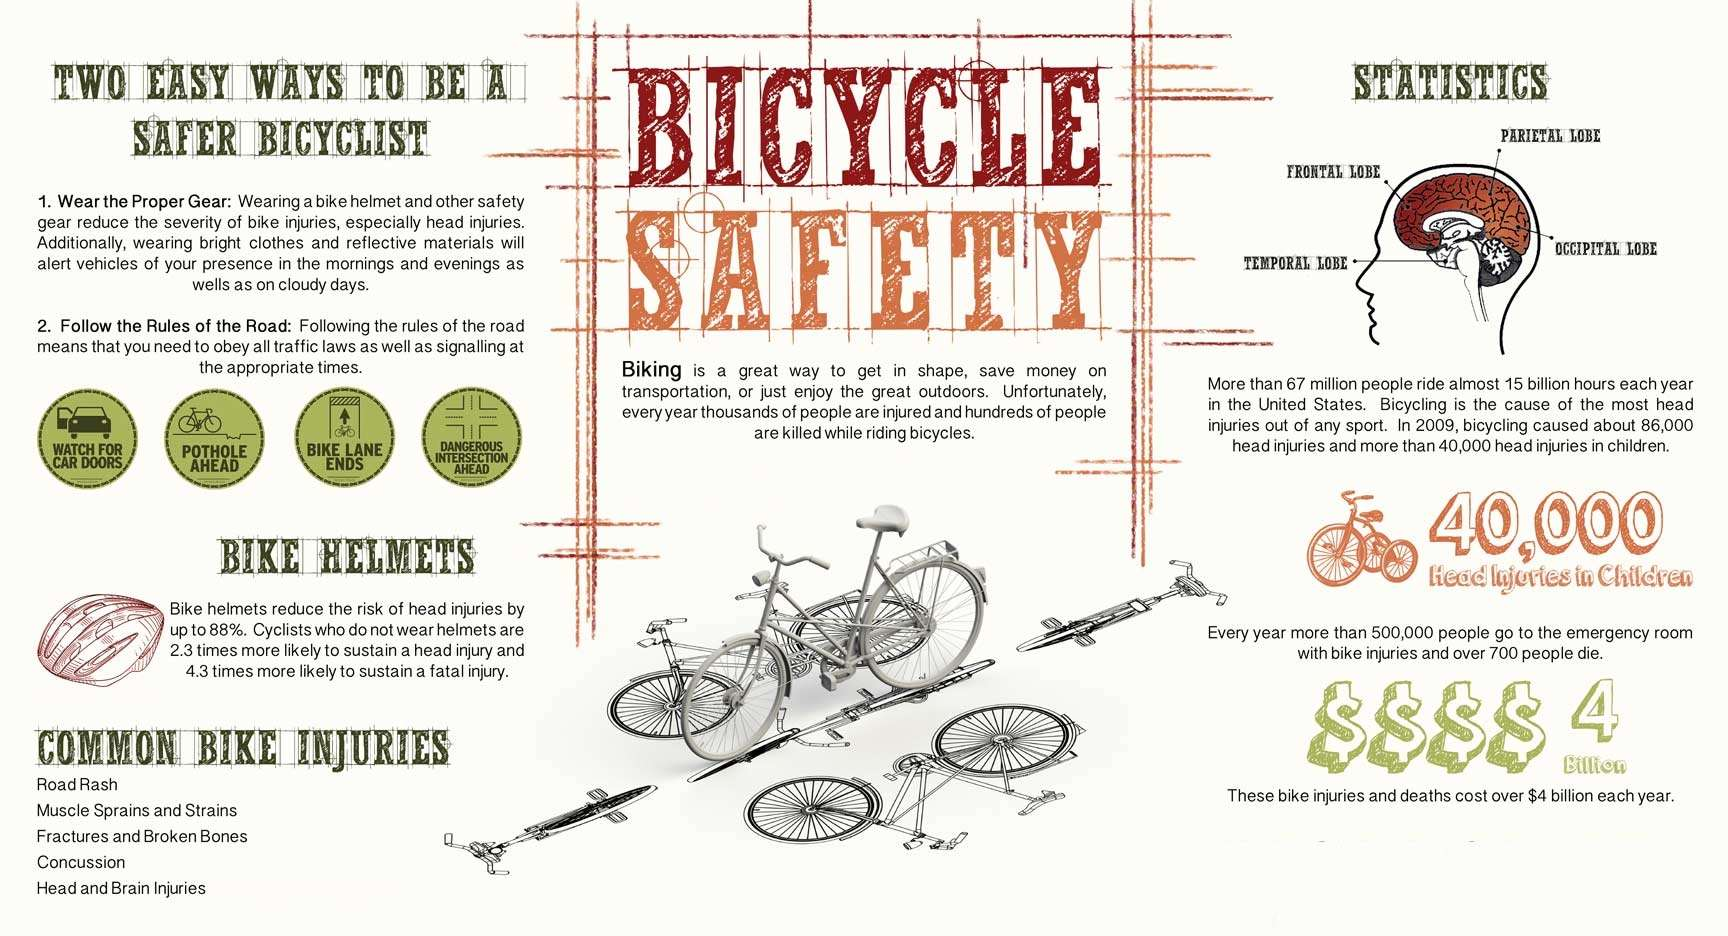 Bicycle safety info-graphic